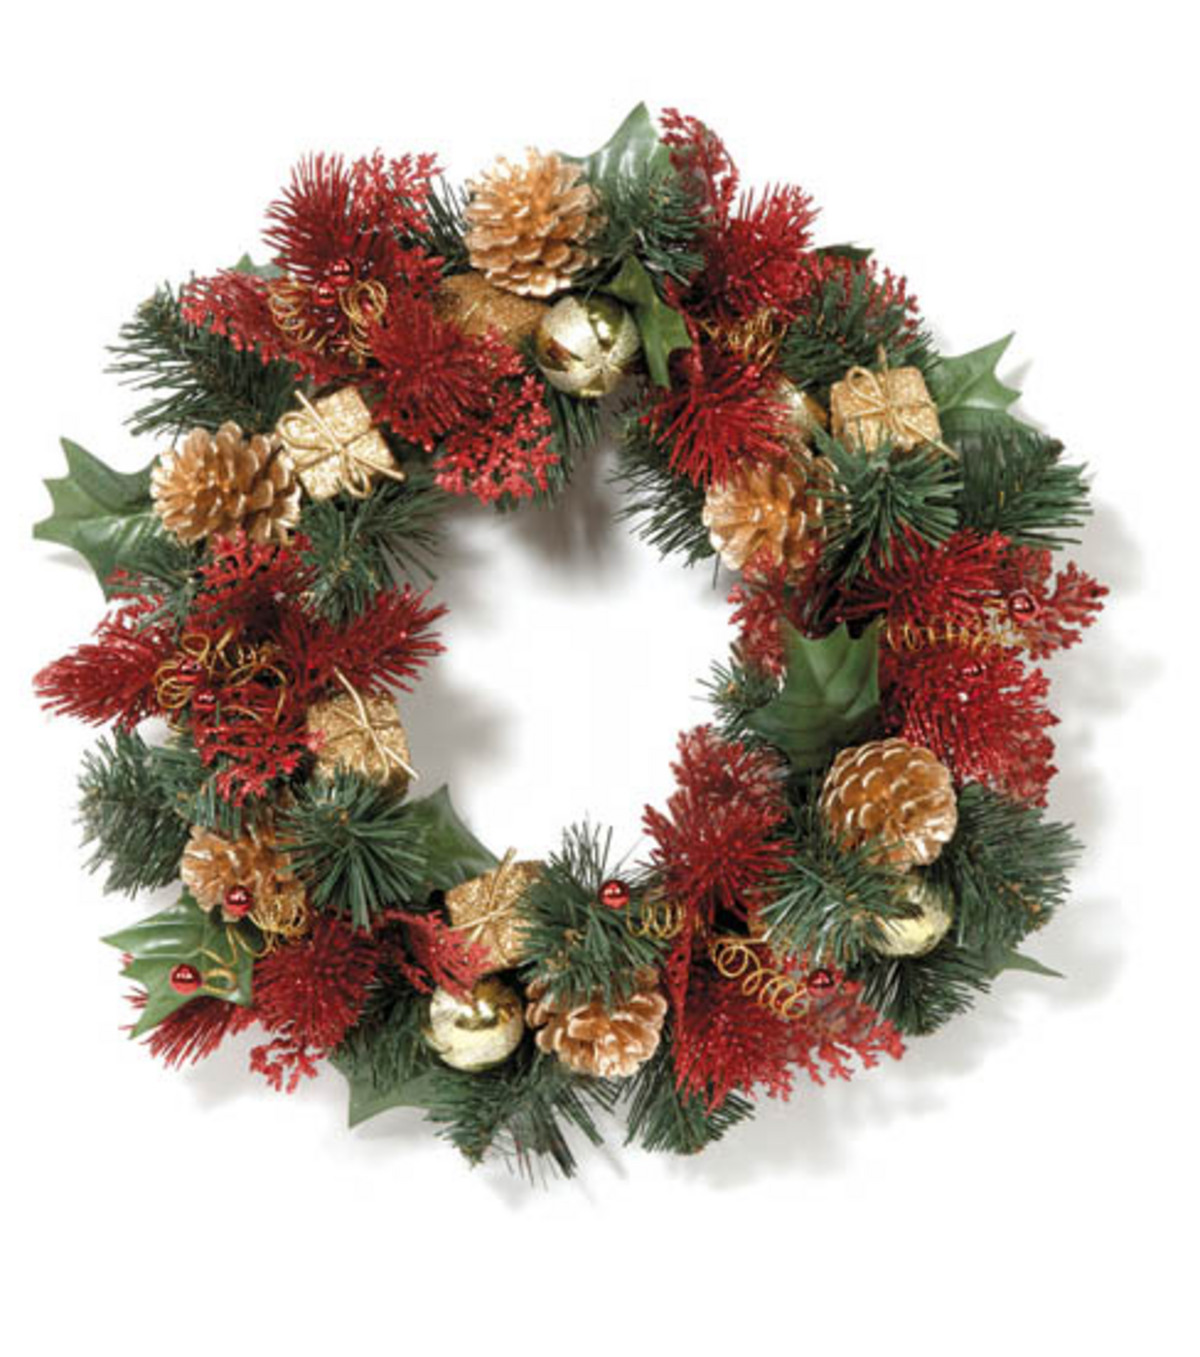 Red & Green Wreath